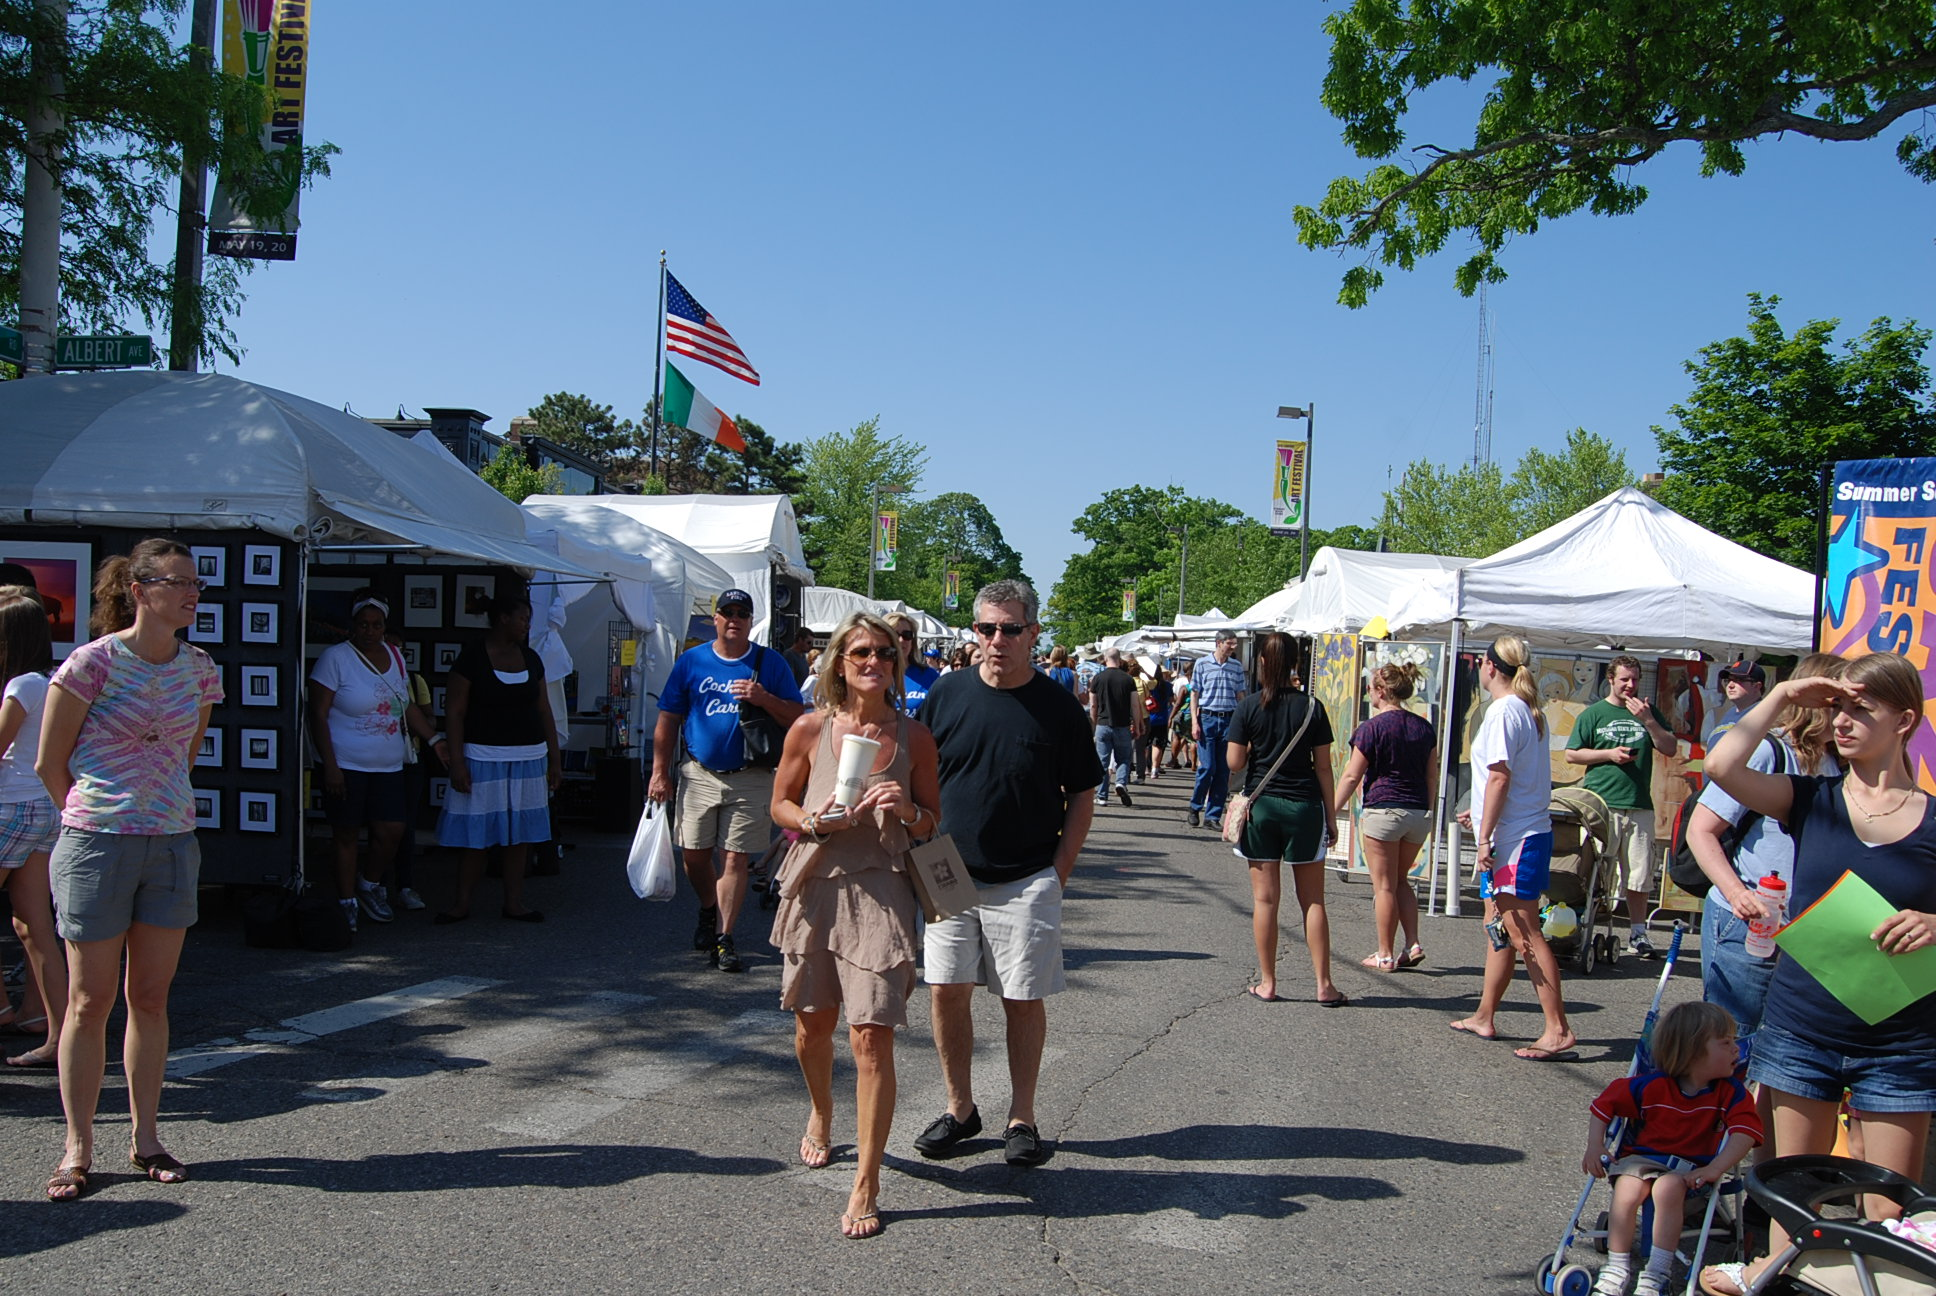 The music, art, and food at the ELAF create an enjoyable afternoon for many of the festival participants.